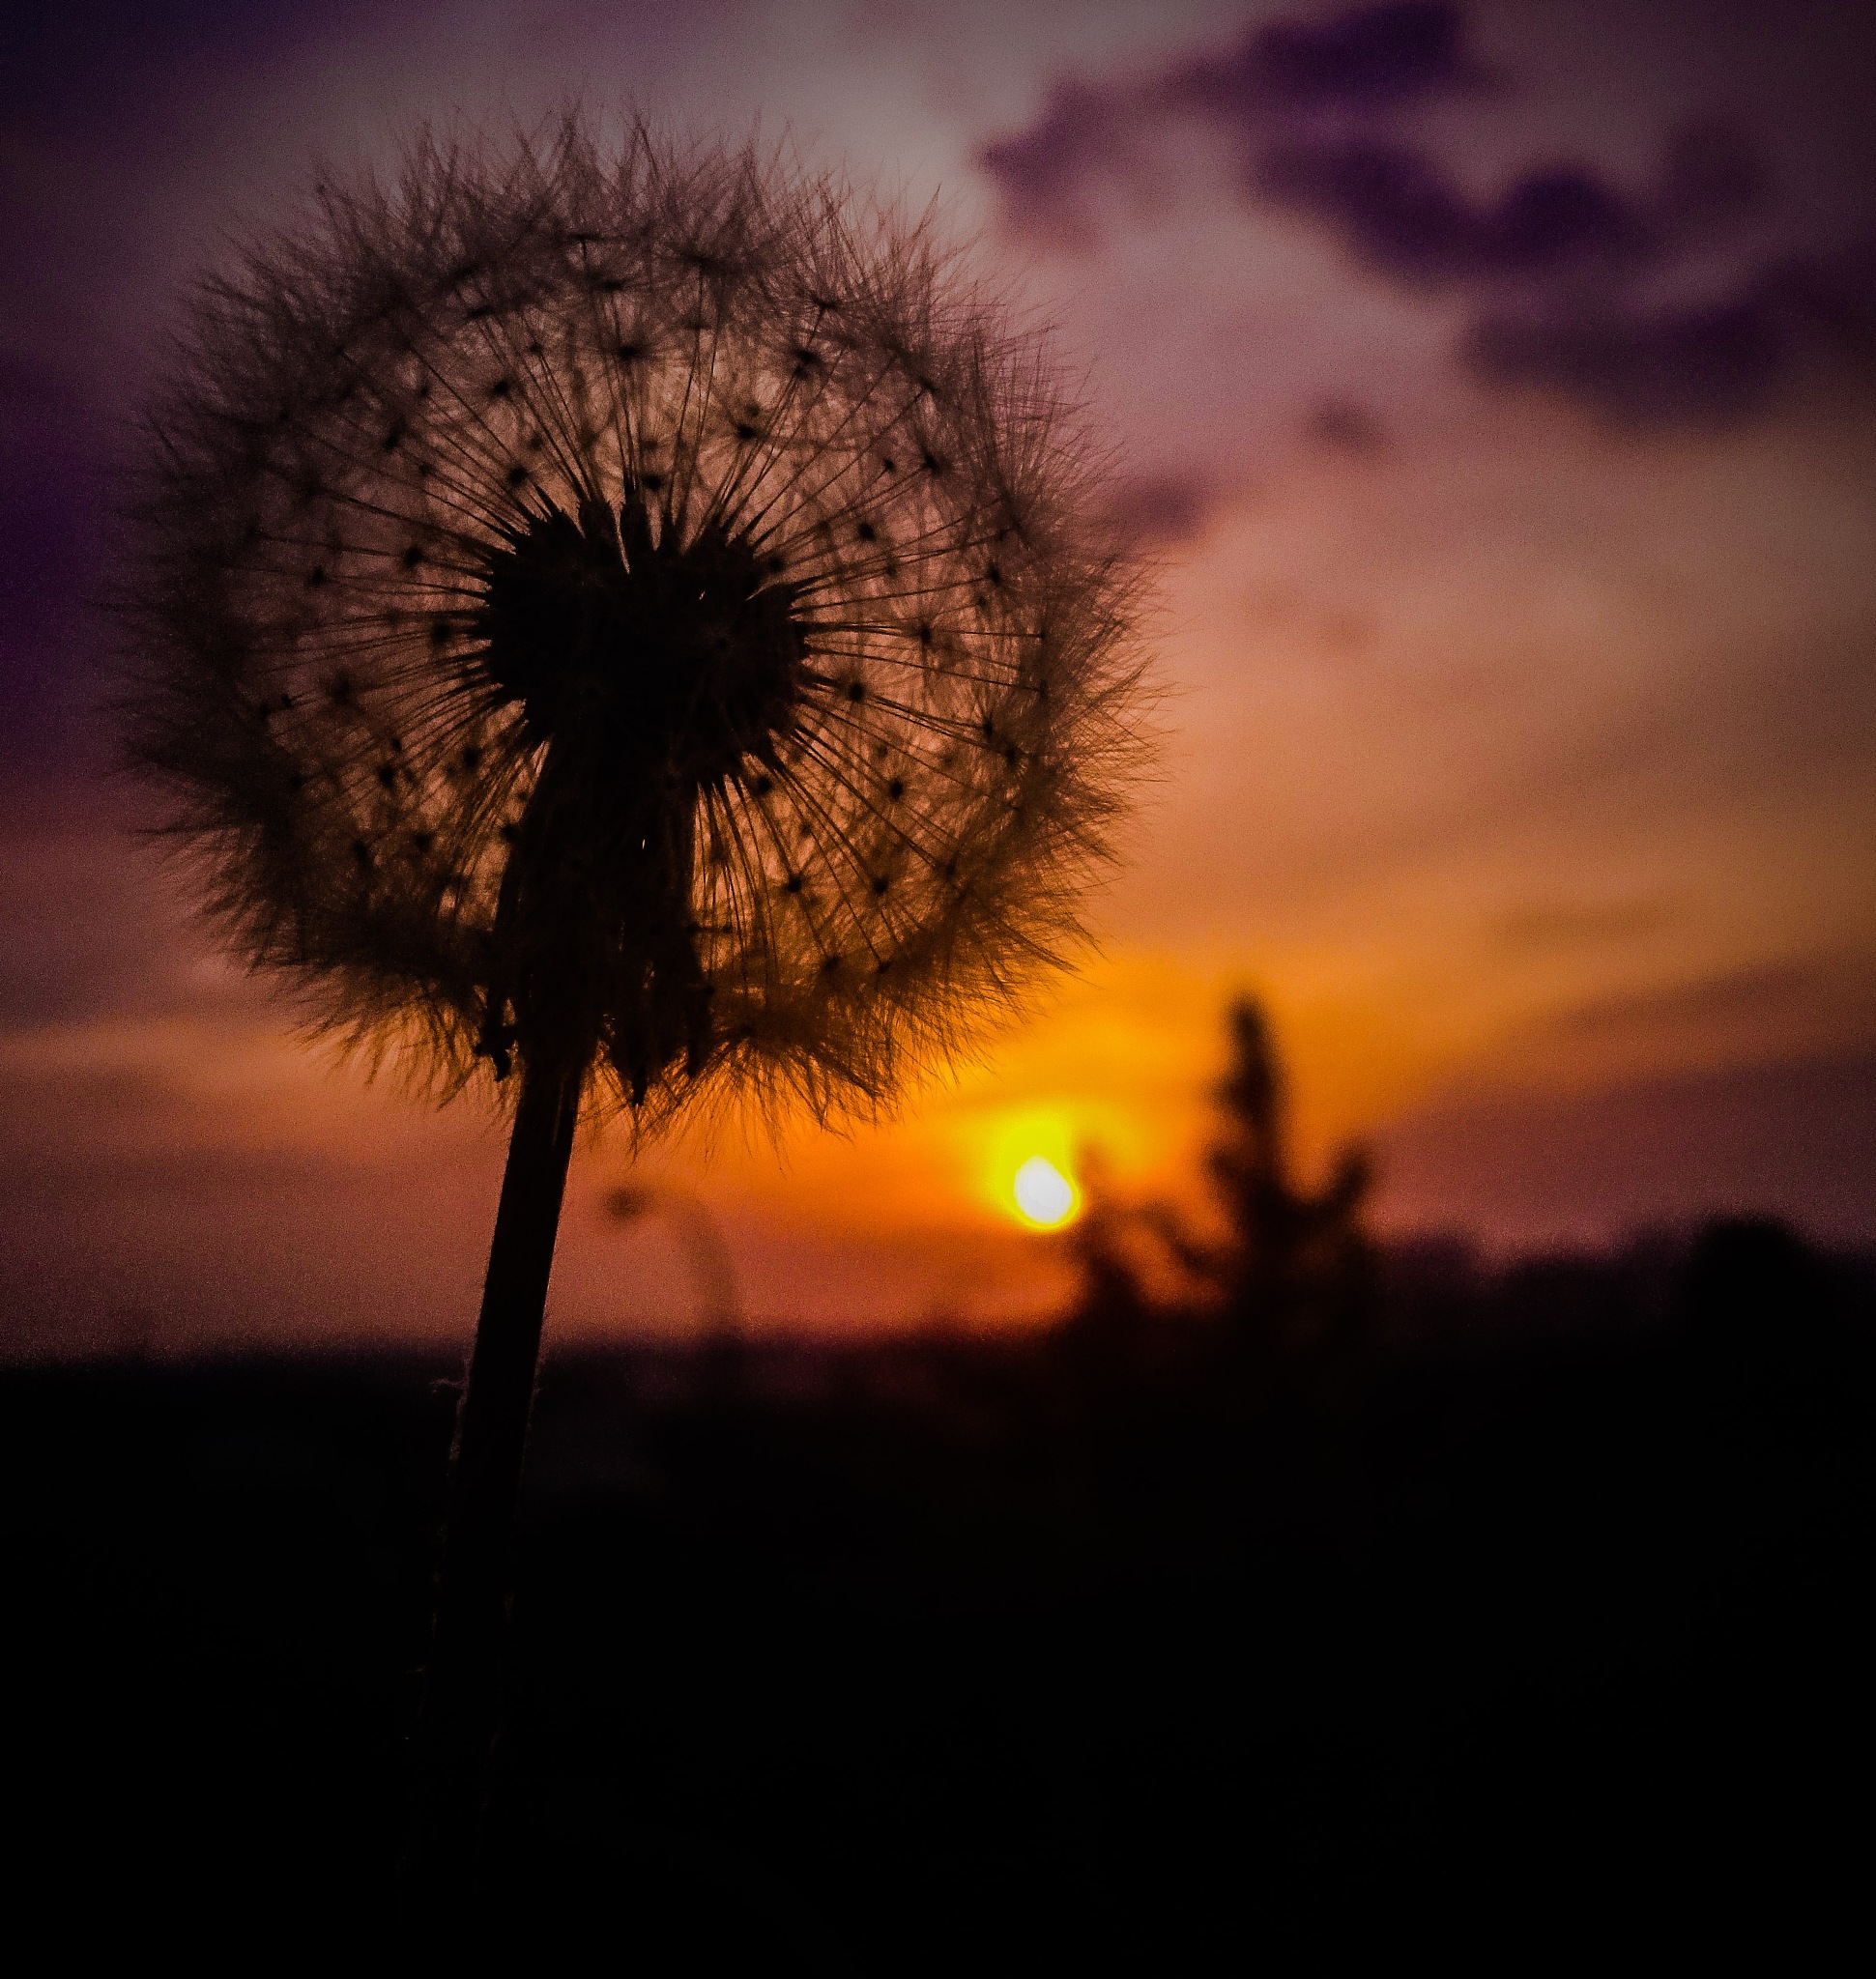 Dandelion and sunset by ElianoJr